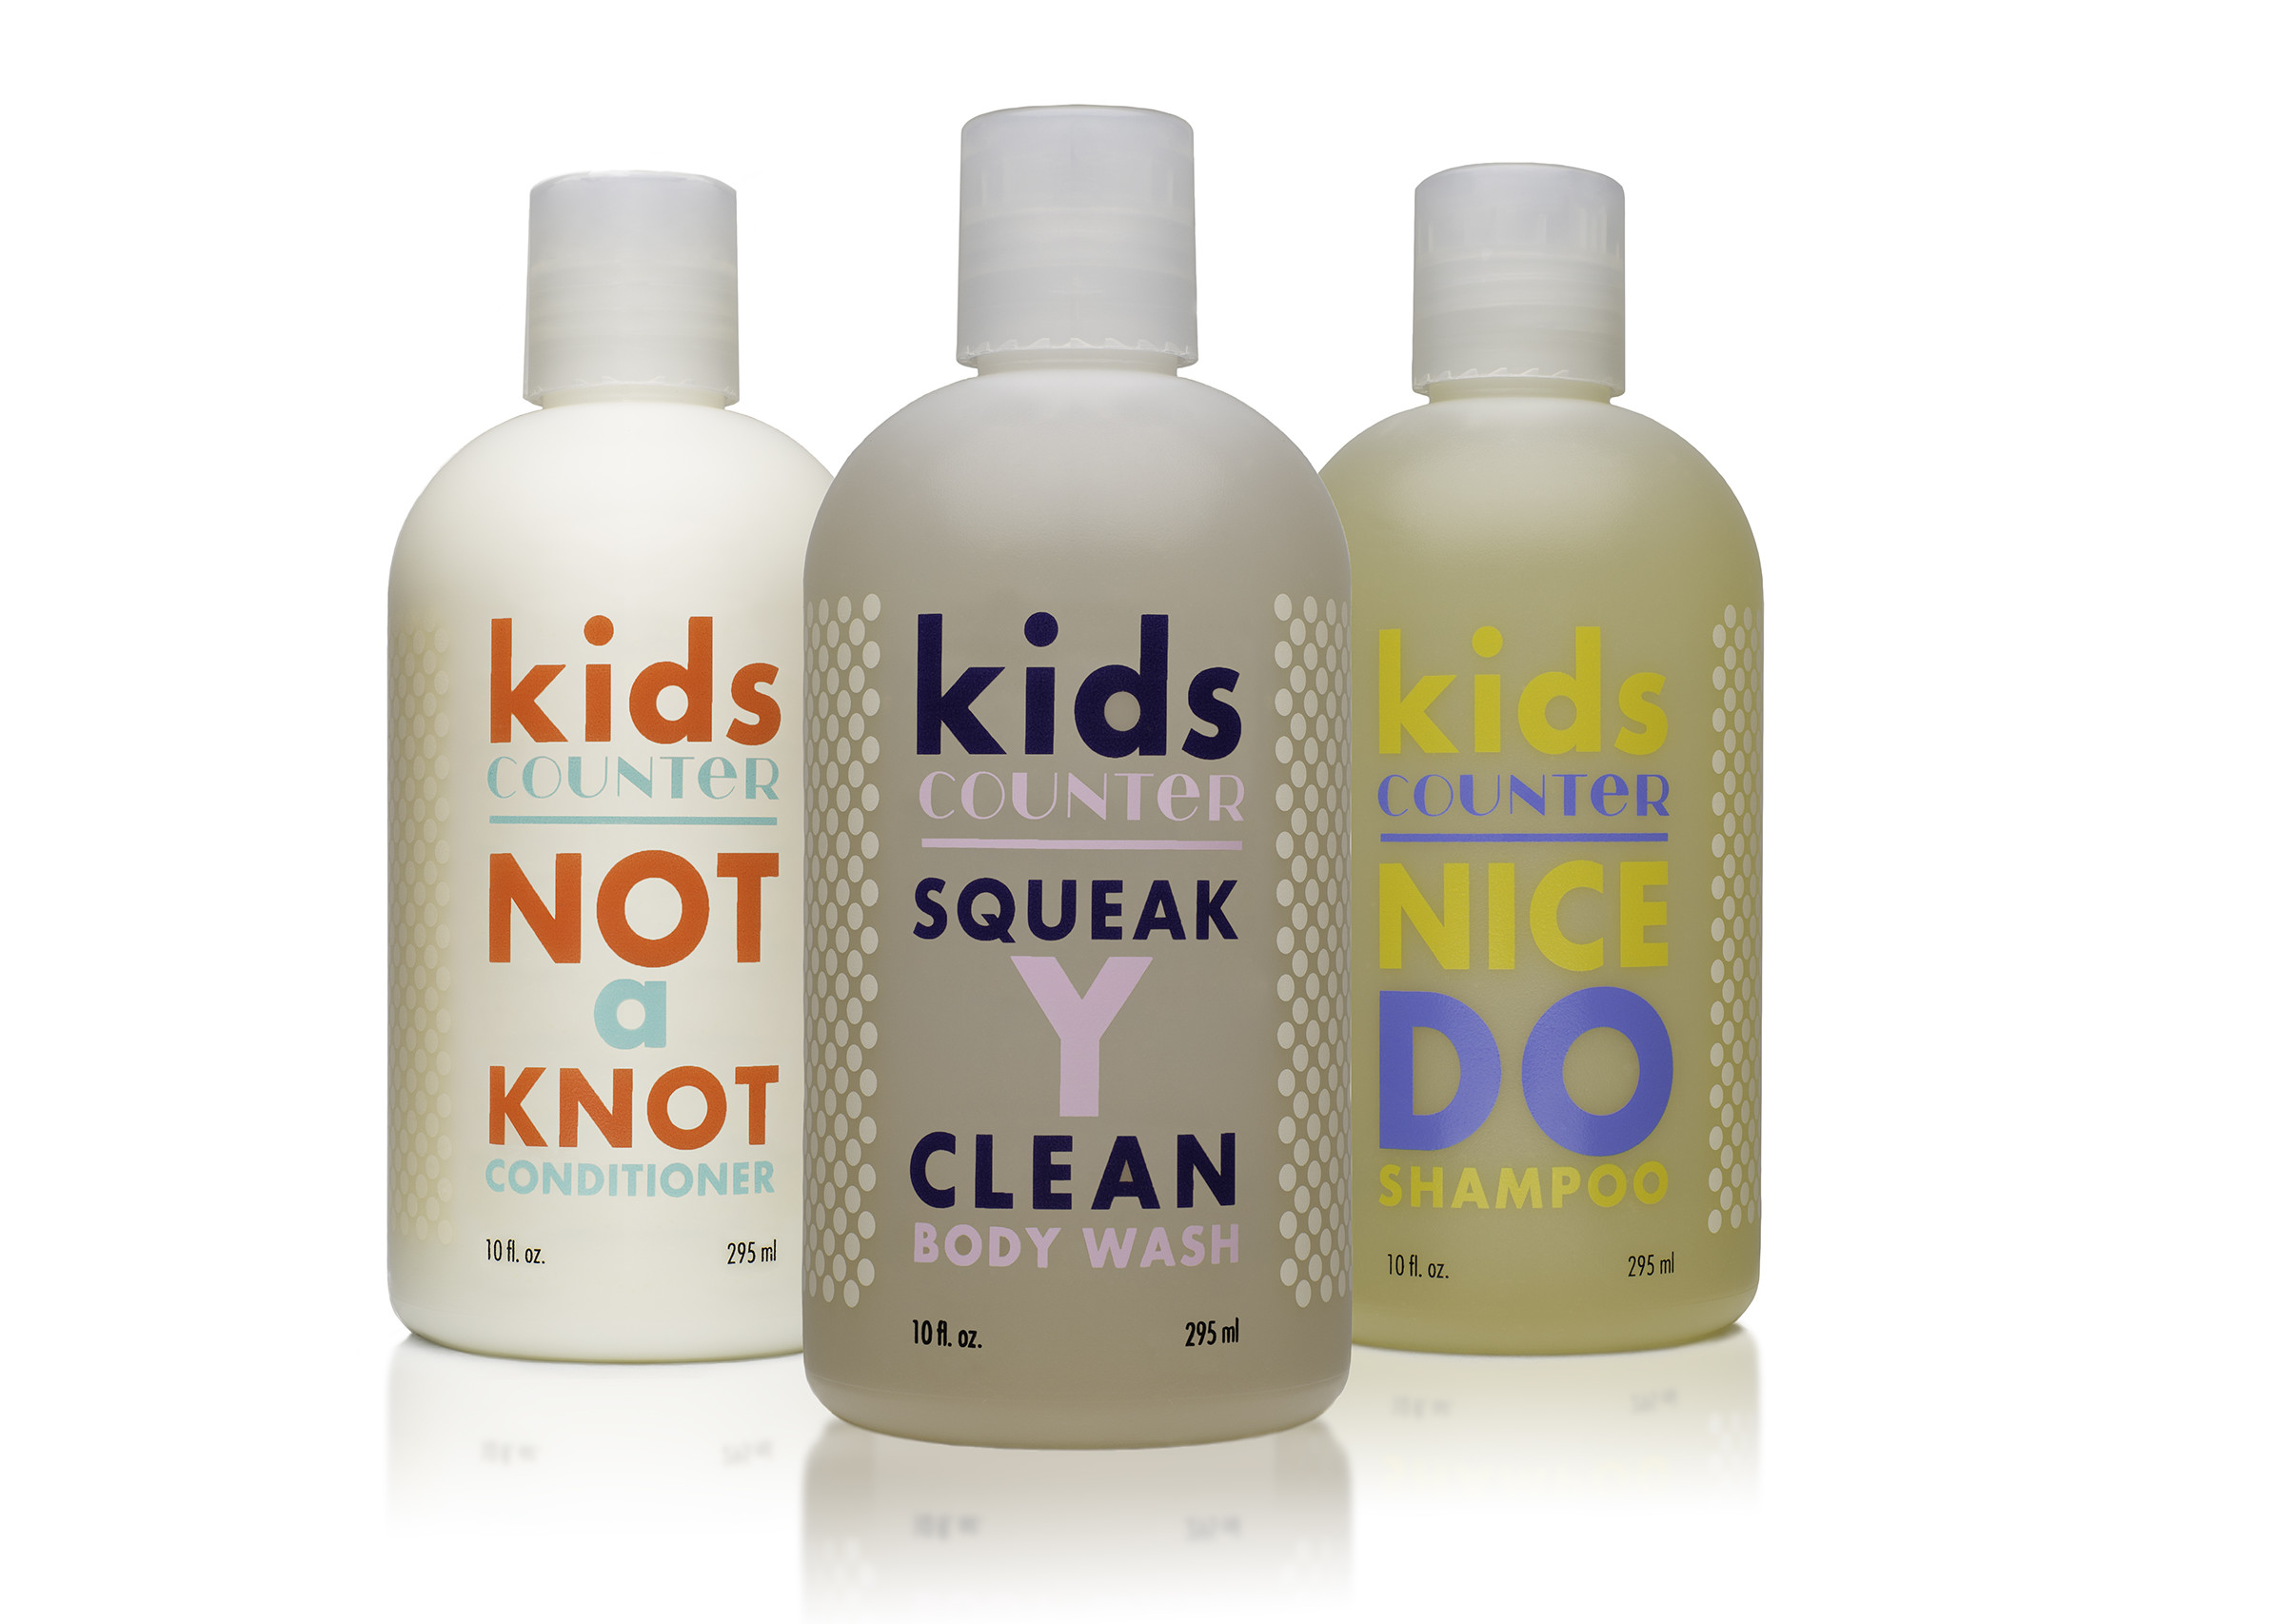 Kidscounter: Non-toxic shampoo for kids that we love. Even if they make your kid want to eat a creamsicle.